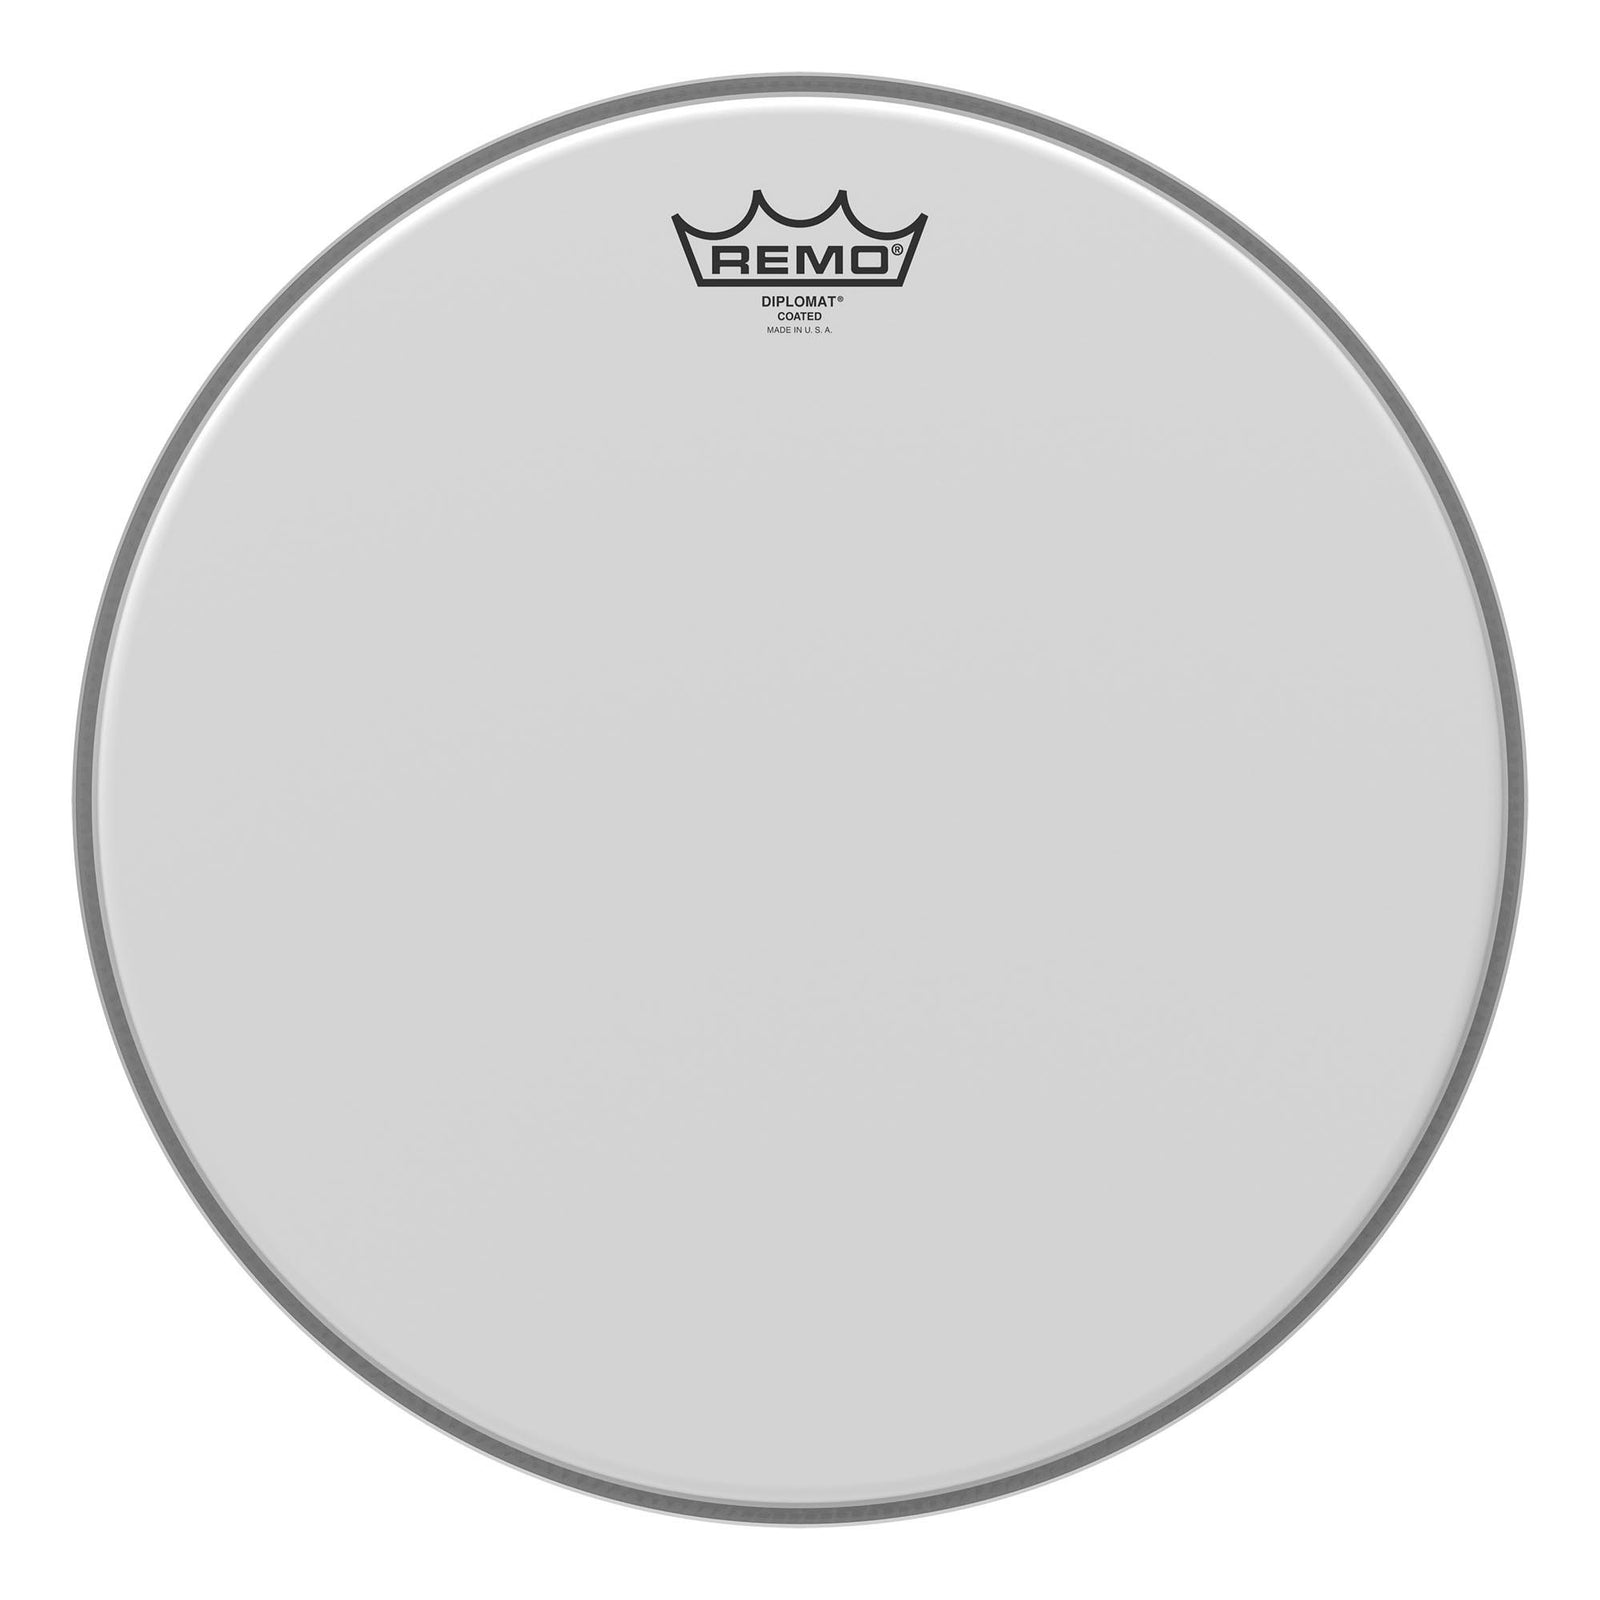 "Remo 14"" Coated Diplomat"